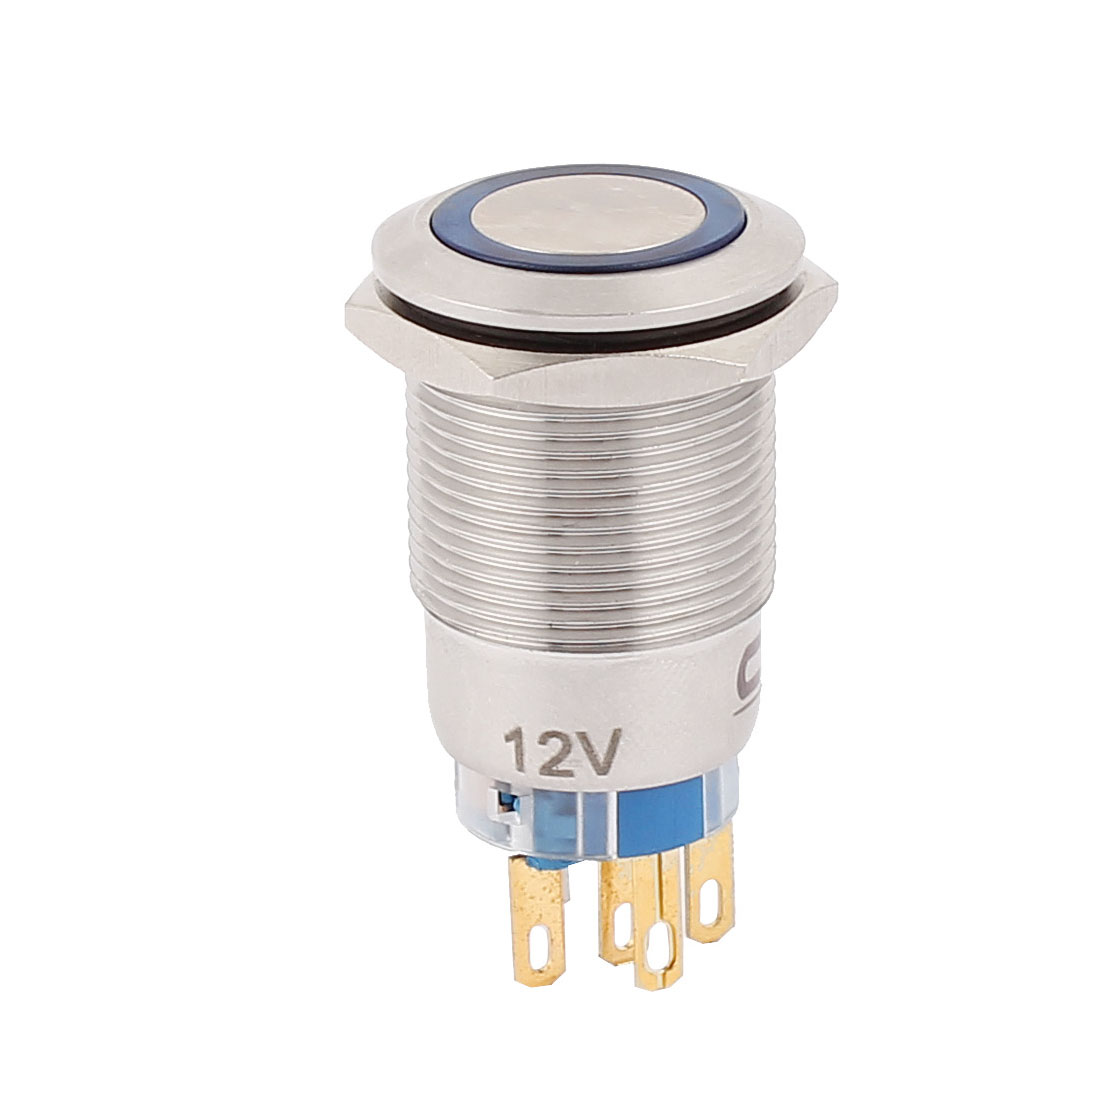 DC 12V 16mm Blue LED Light 19mm Mounted Thread 5Pins SPDT NO/NC Flat Head Latching Push Button Switch